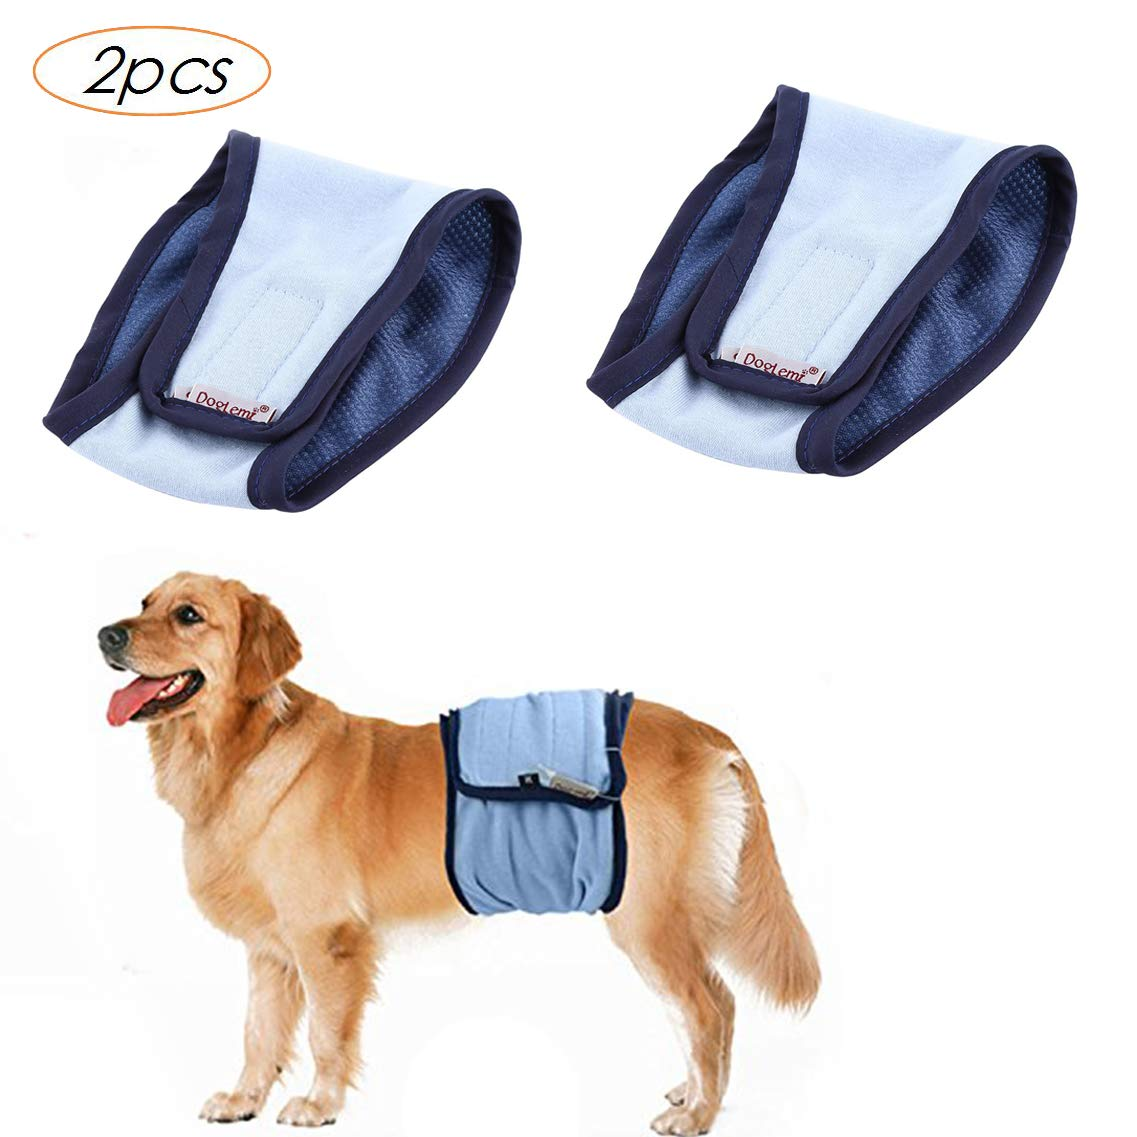 Tineer Reusable Wrap Leakproof Diapers for Male Pet Dog,Washable Puppy Belly Band Physiological Sanitary Pants 2pack M, Black+Blue